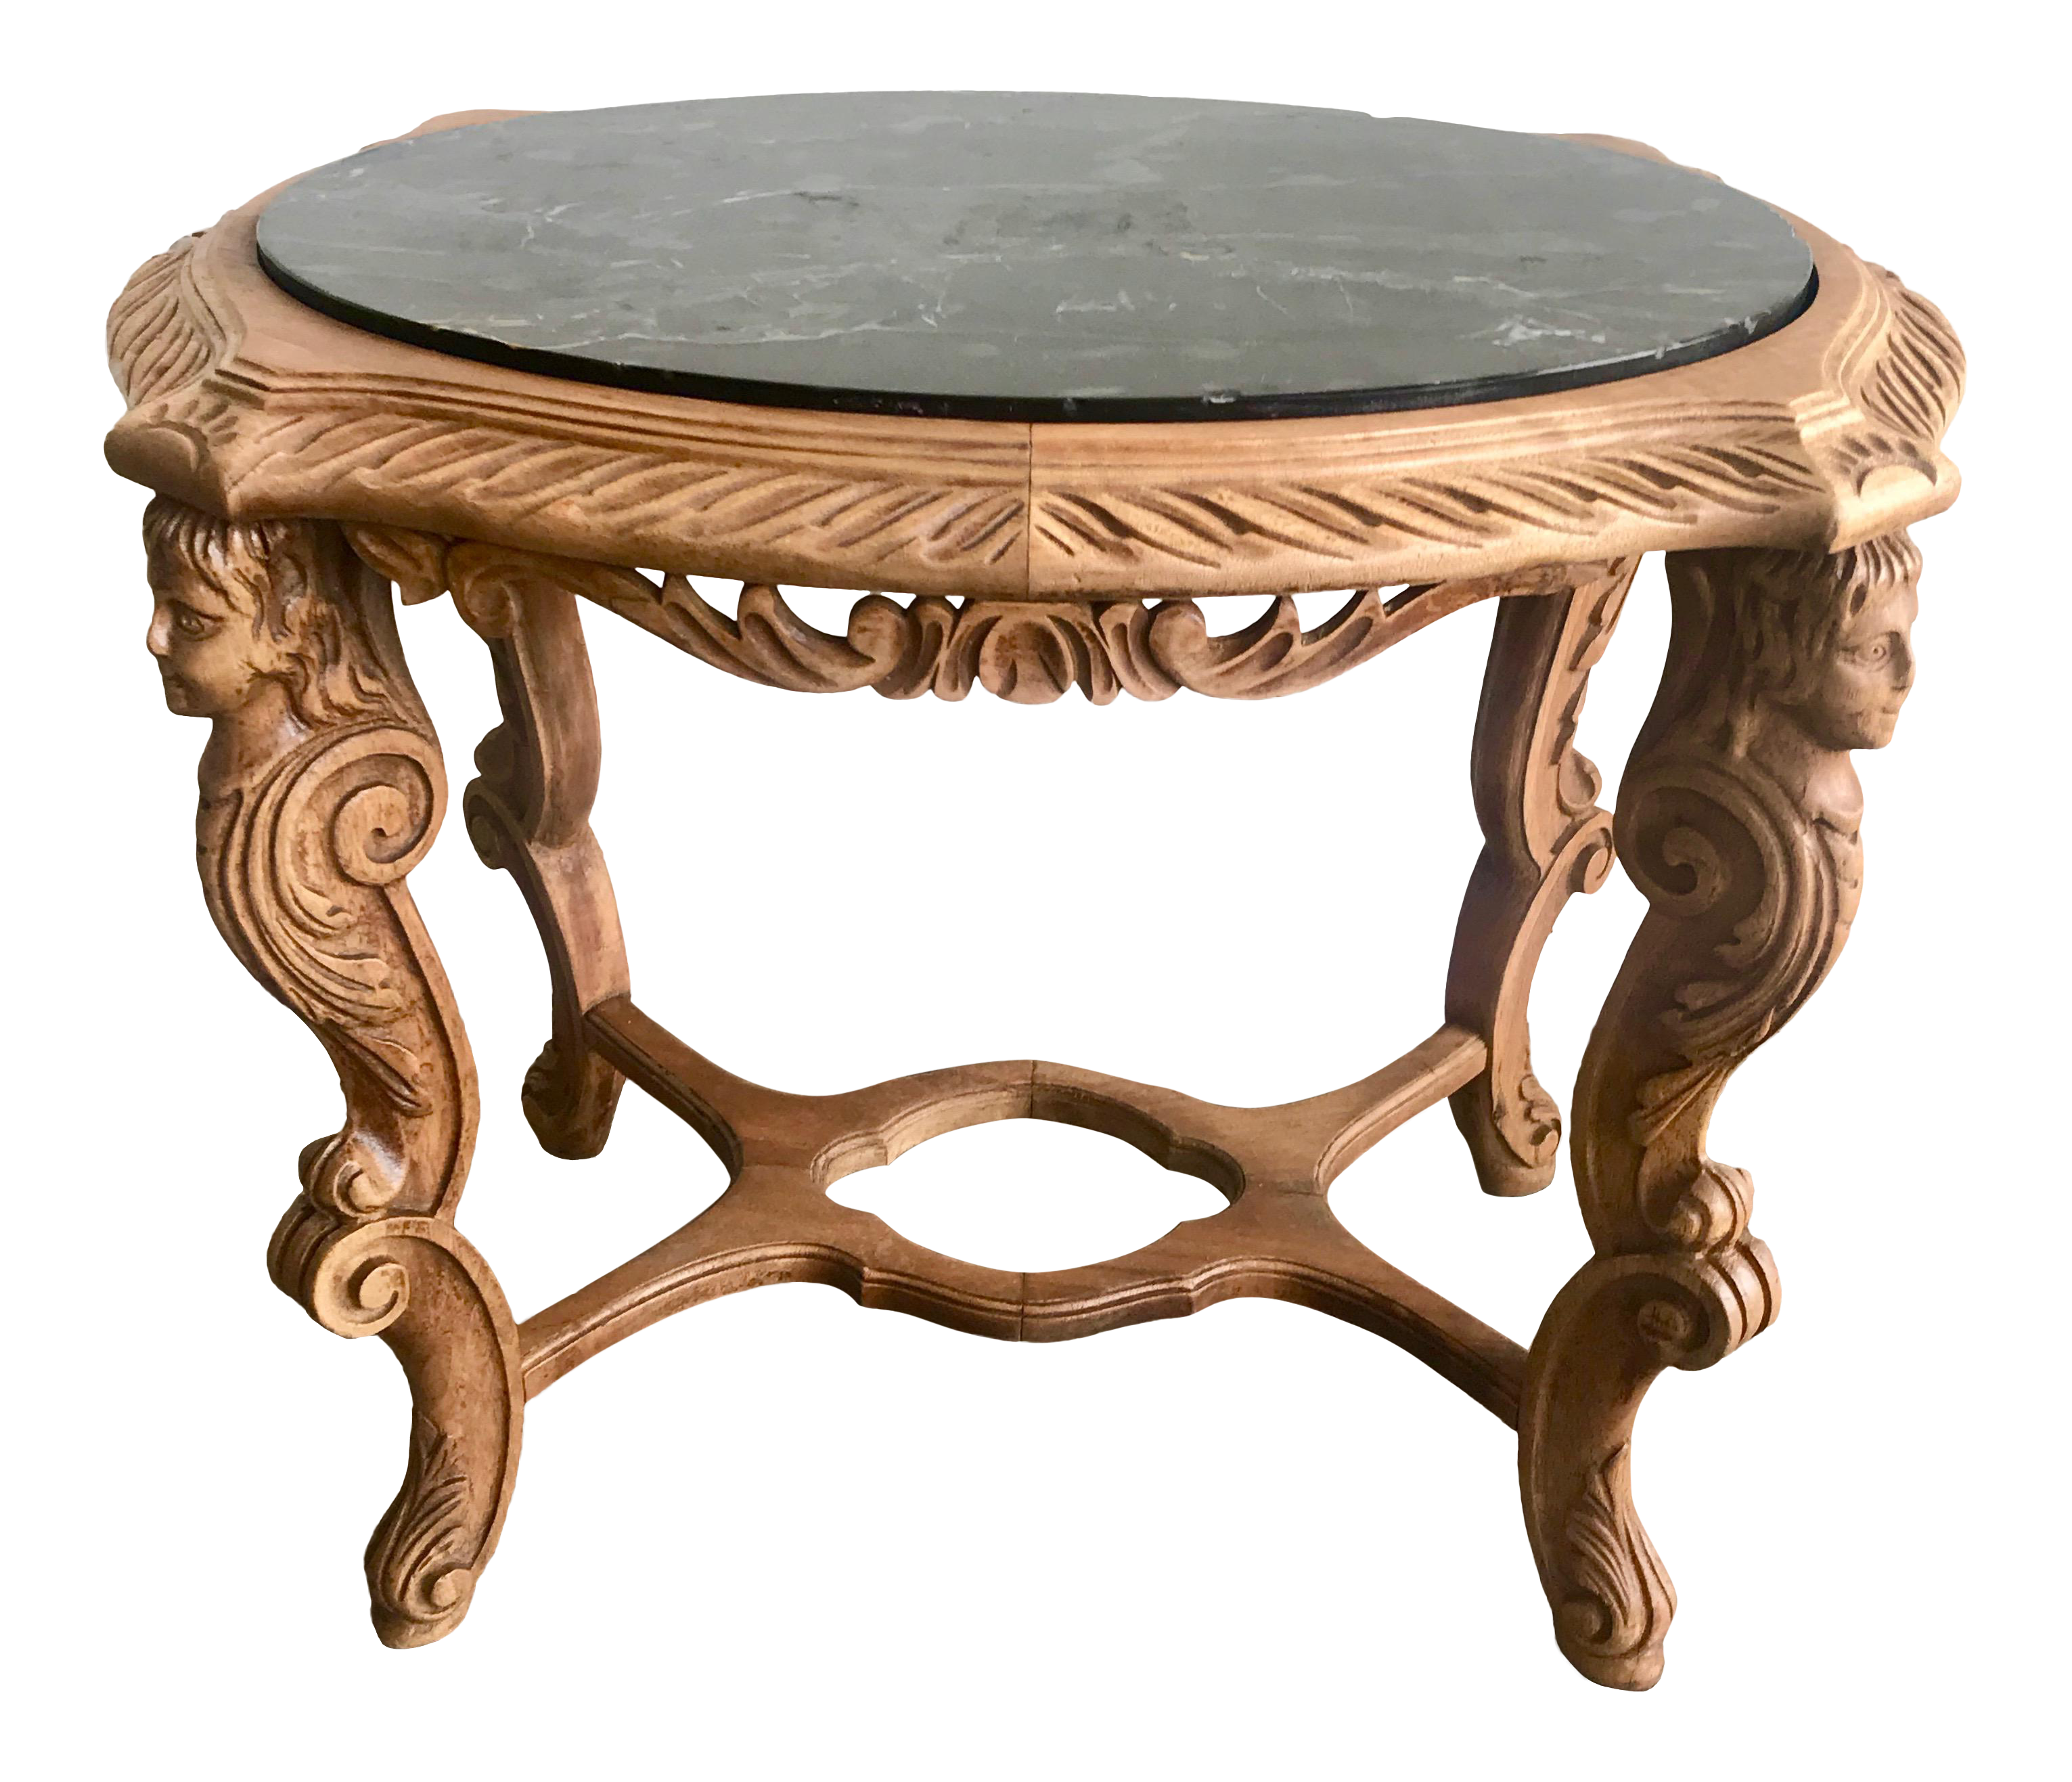 20th century french ornate carved wood black marble top side table